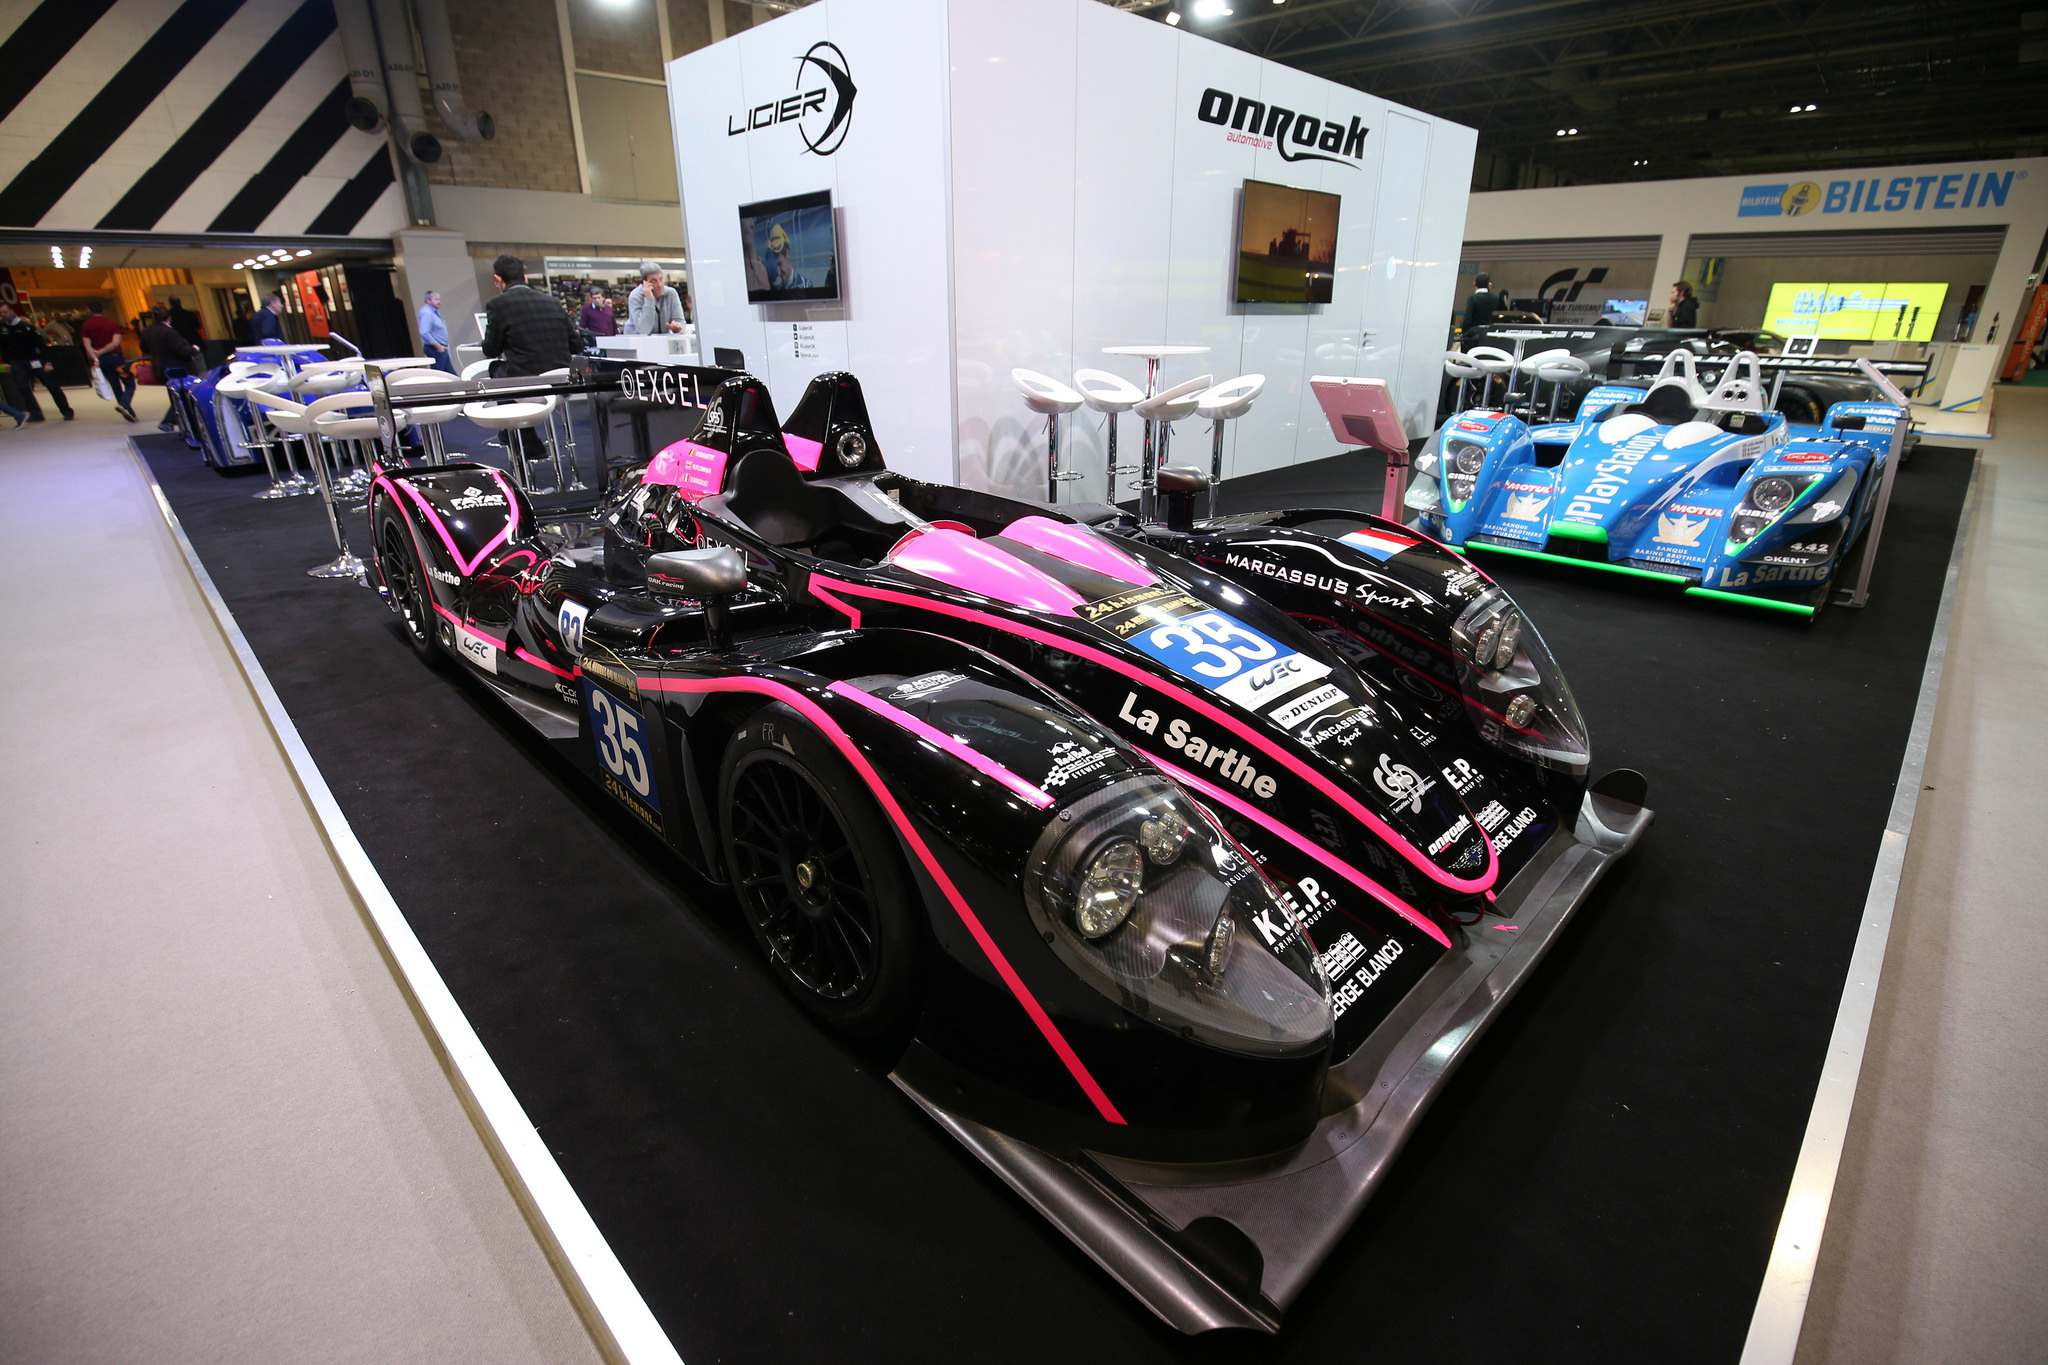 ligier 201811 Ligier at Autosport International Show 2018